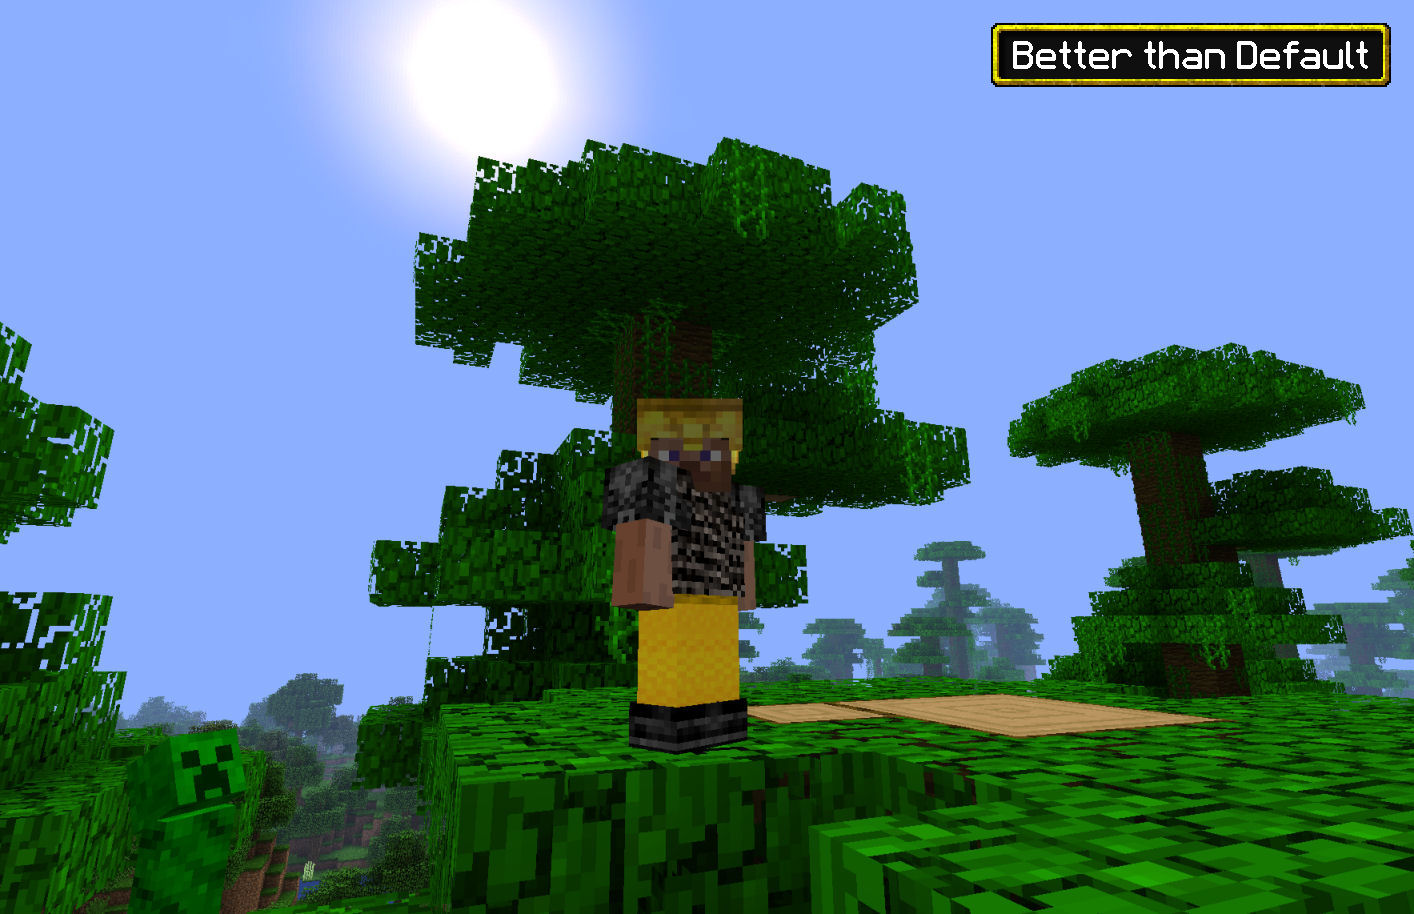 fbfe7  Better than default texture pack 1 [1.5.2/1.5.1] [16x] Better than Default Texture Pack Download